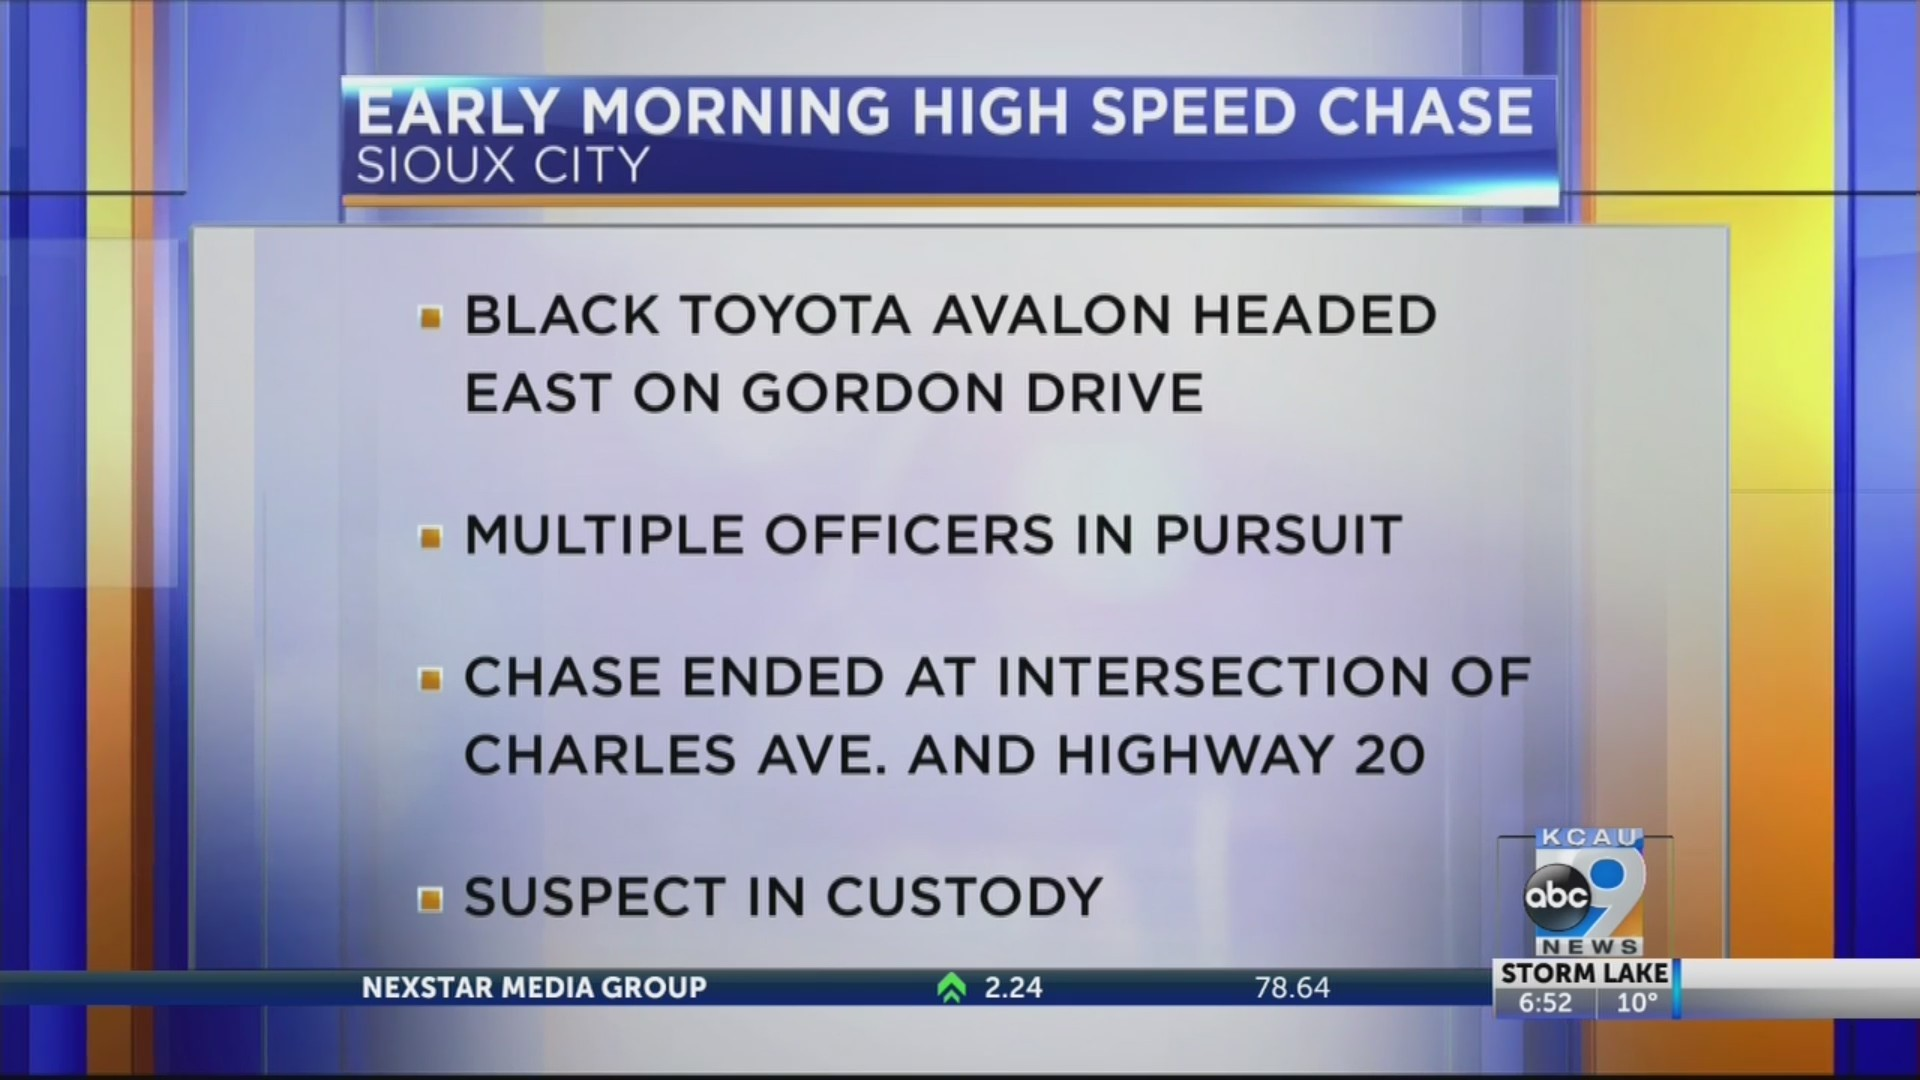 high speed chase #2